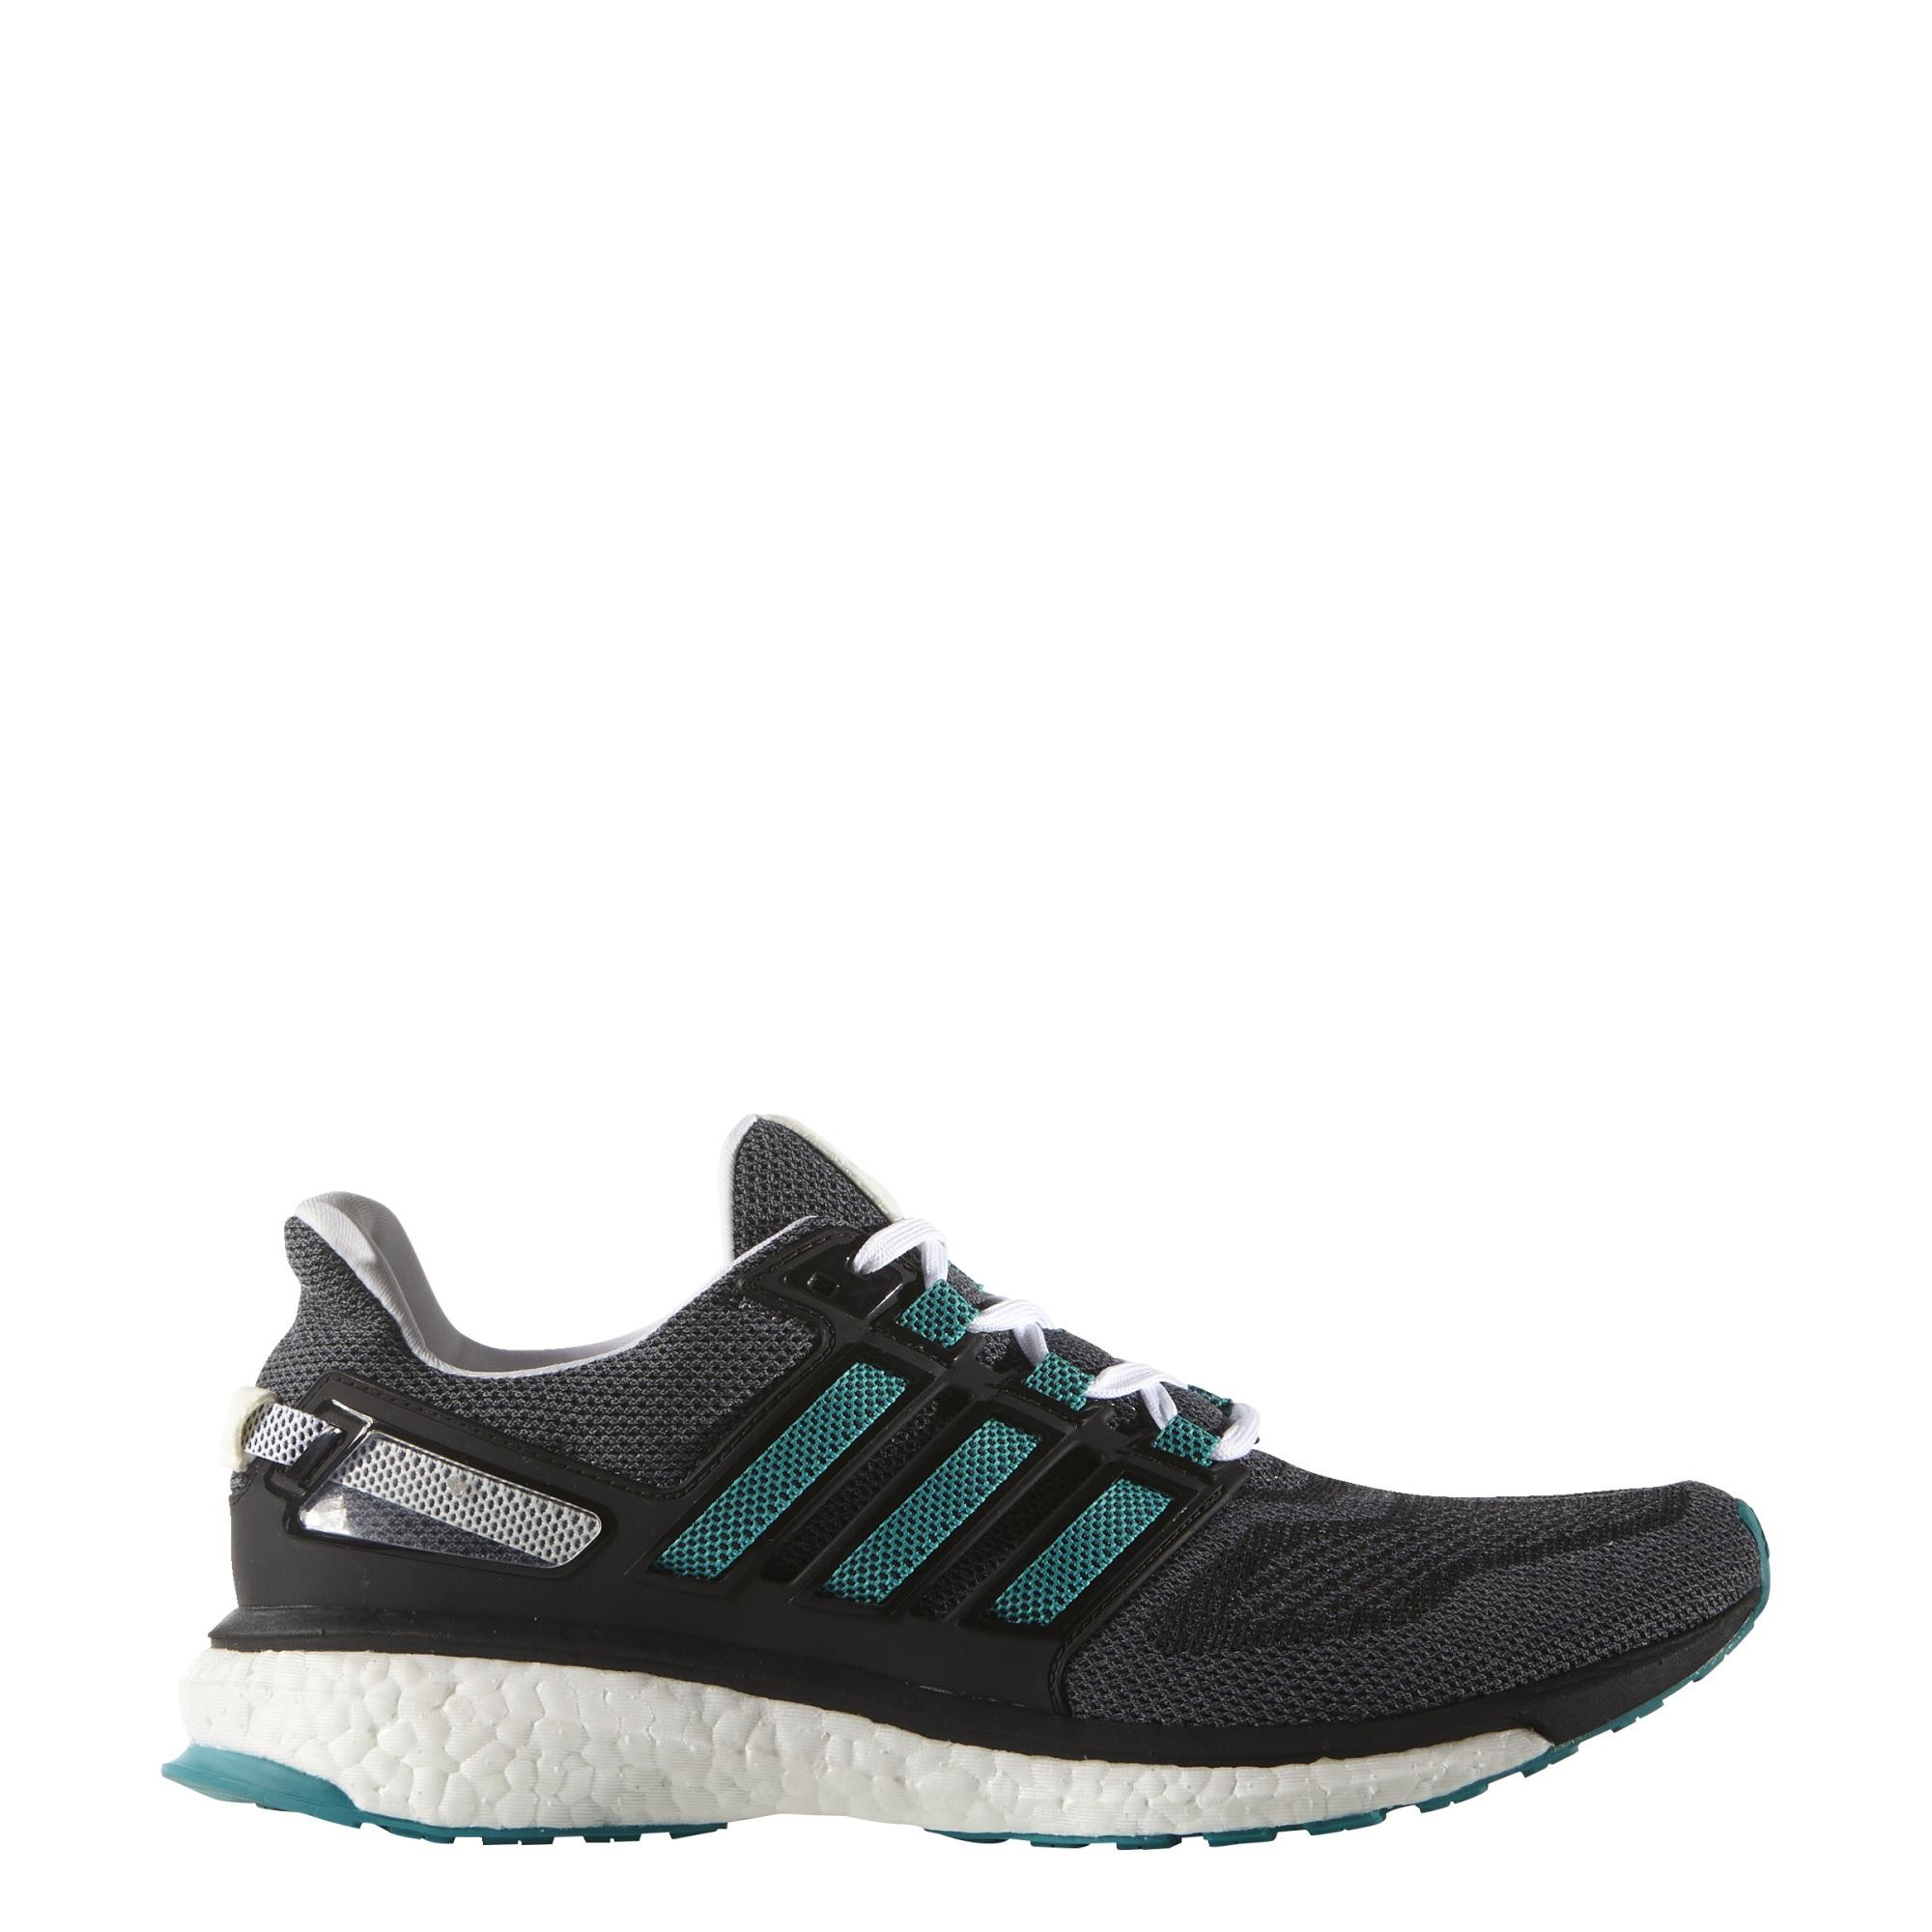 pretty nice 83a9a 2f7fa ZAPATILLAS RUNNING ADIDAS ENERGY BOOST 3 HOMBRE AF4917. Loading.